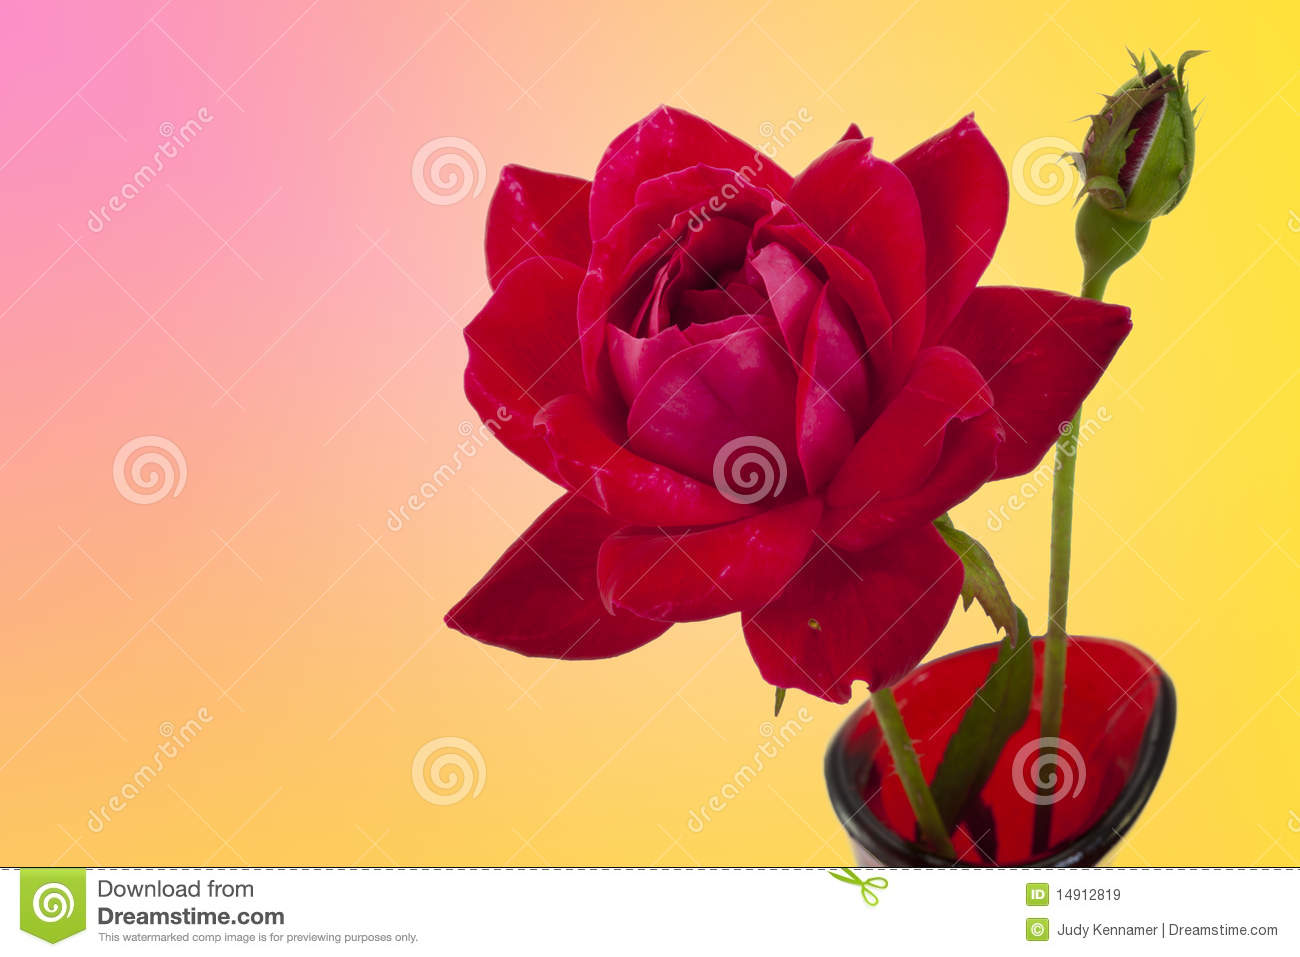 Red Rose And Bud On Pink And Yellow Background Royalty Free Stock Images Image 14912819